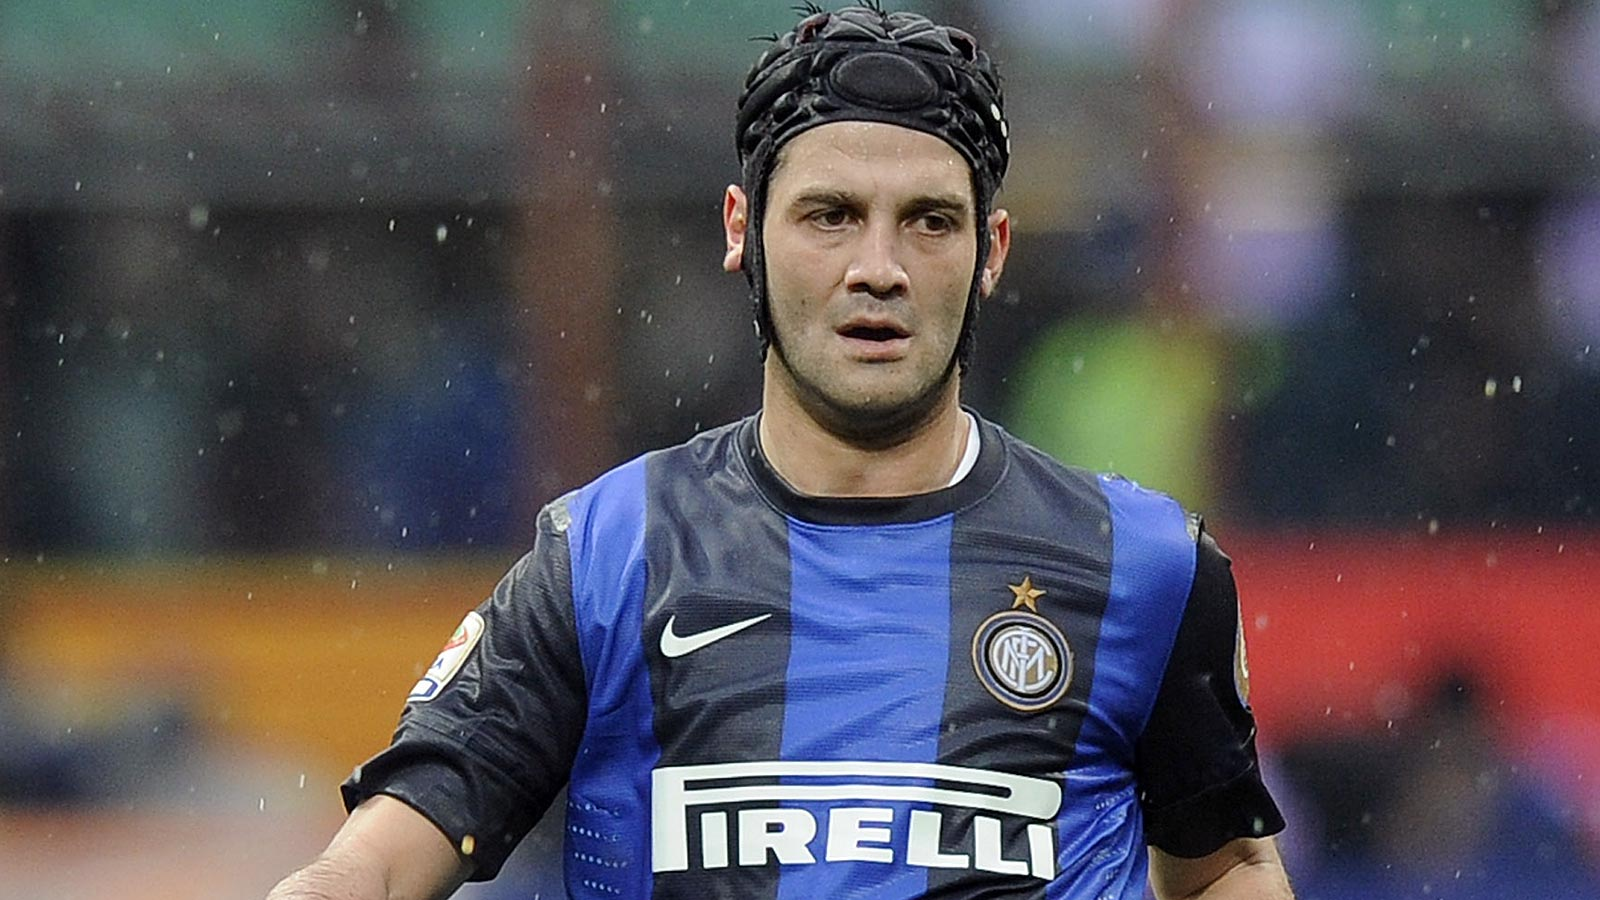 Cristian chivu imdb thecheapjerseys Image collections